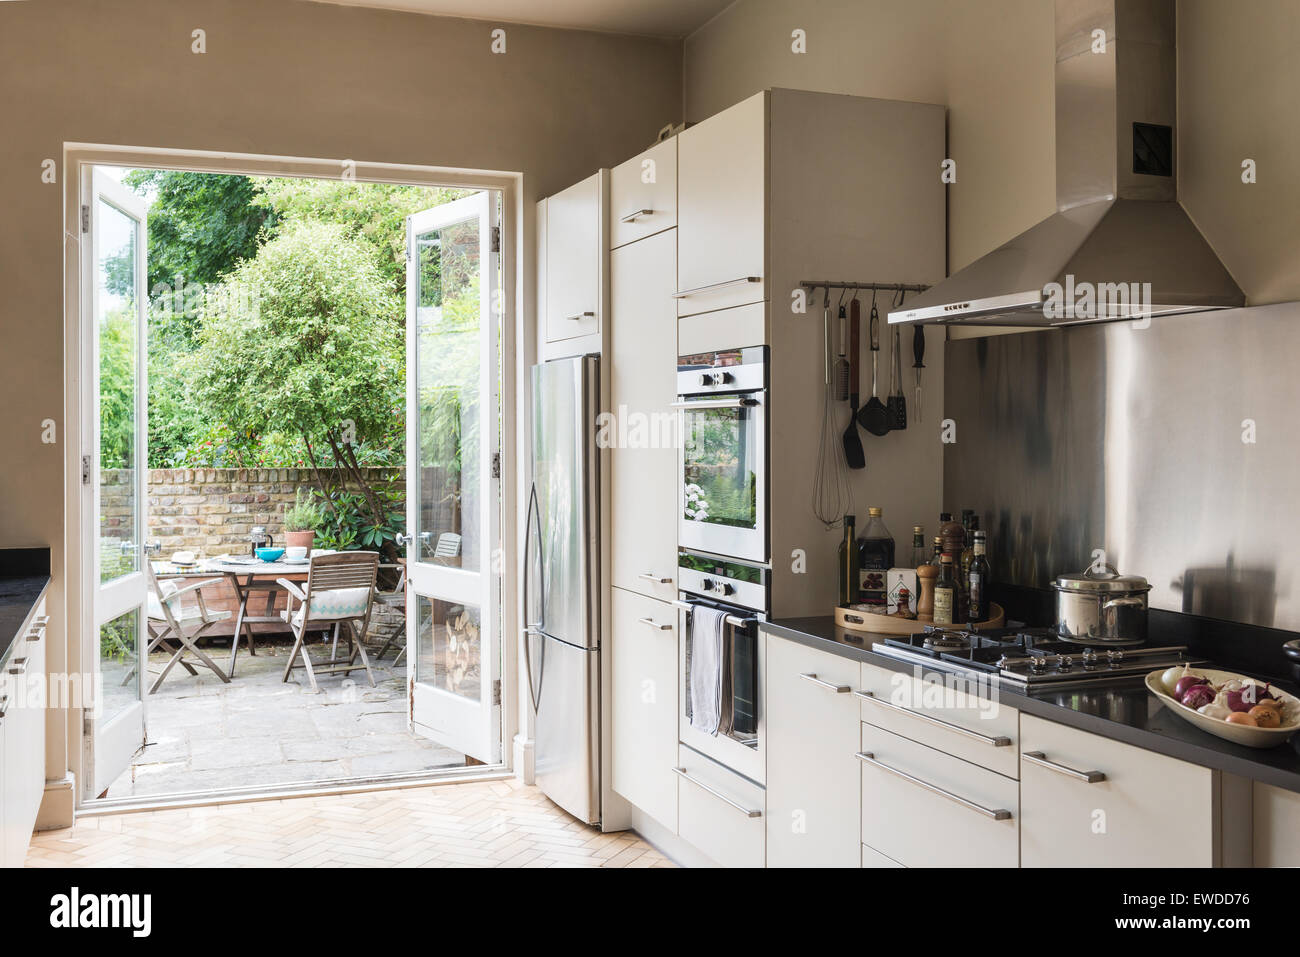 Garden To Kitchen French Windows Open Onto Garden From Kitchen Area With Stainless